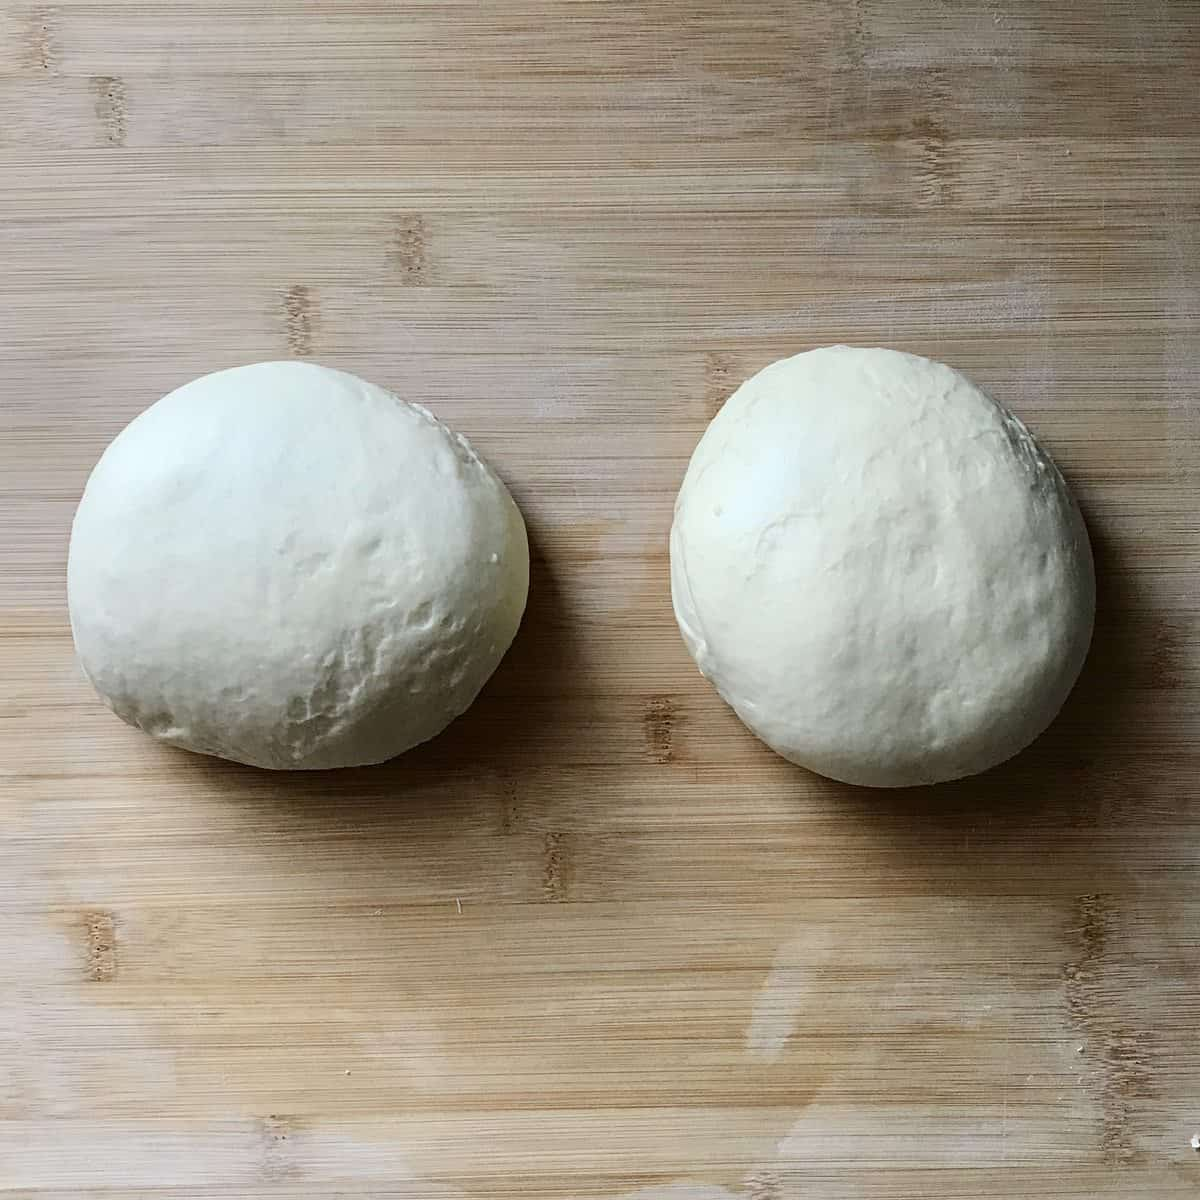 Two balls of dough on a wooden board.